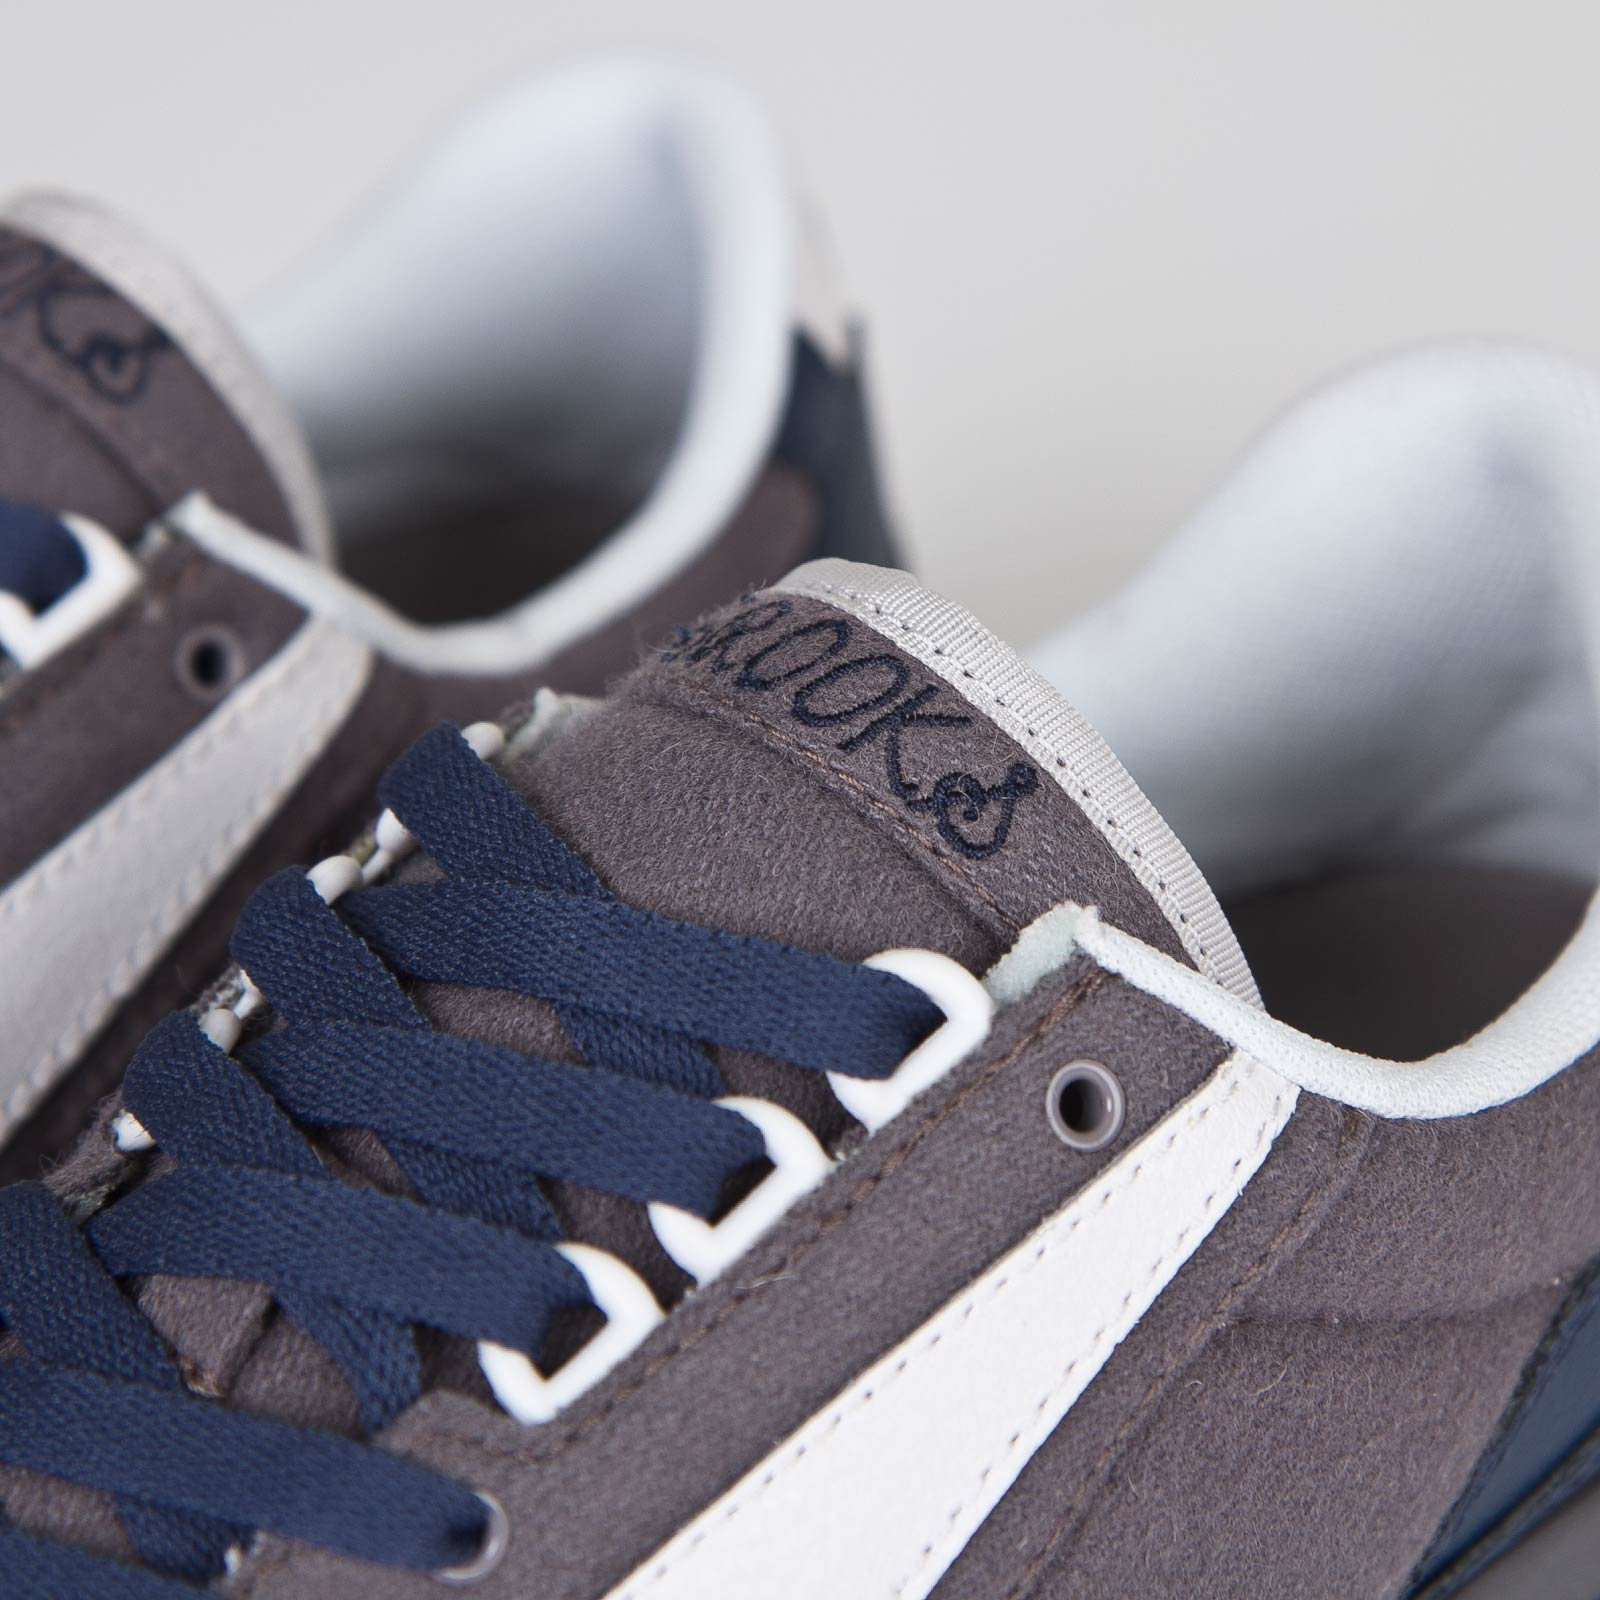 a3f0735a3c364 Brooks Chariot - 110178-1d445 - Sneakersnstuff